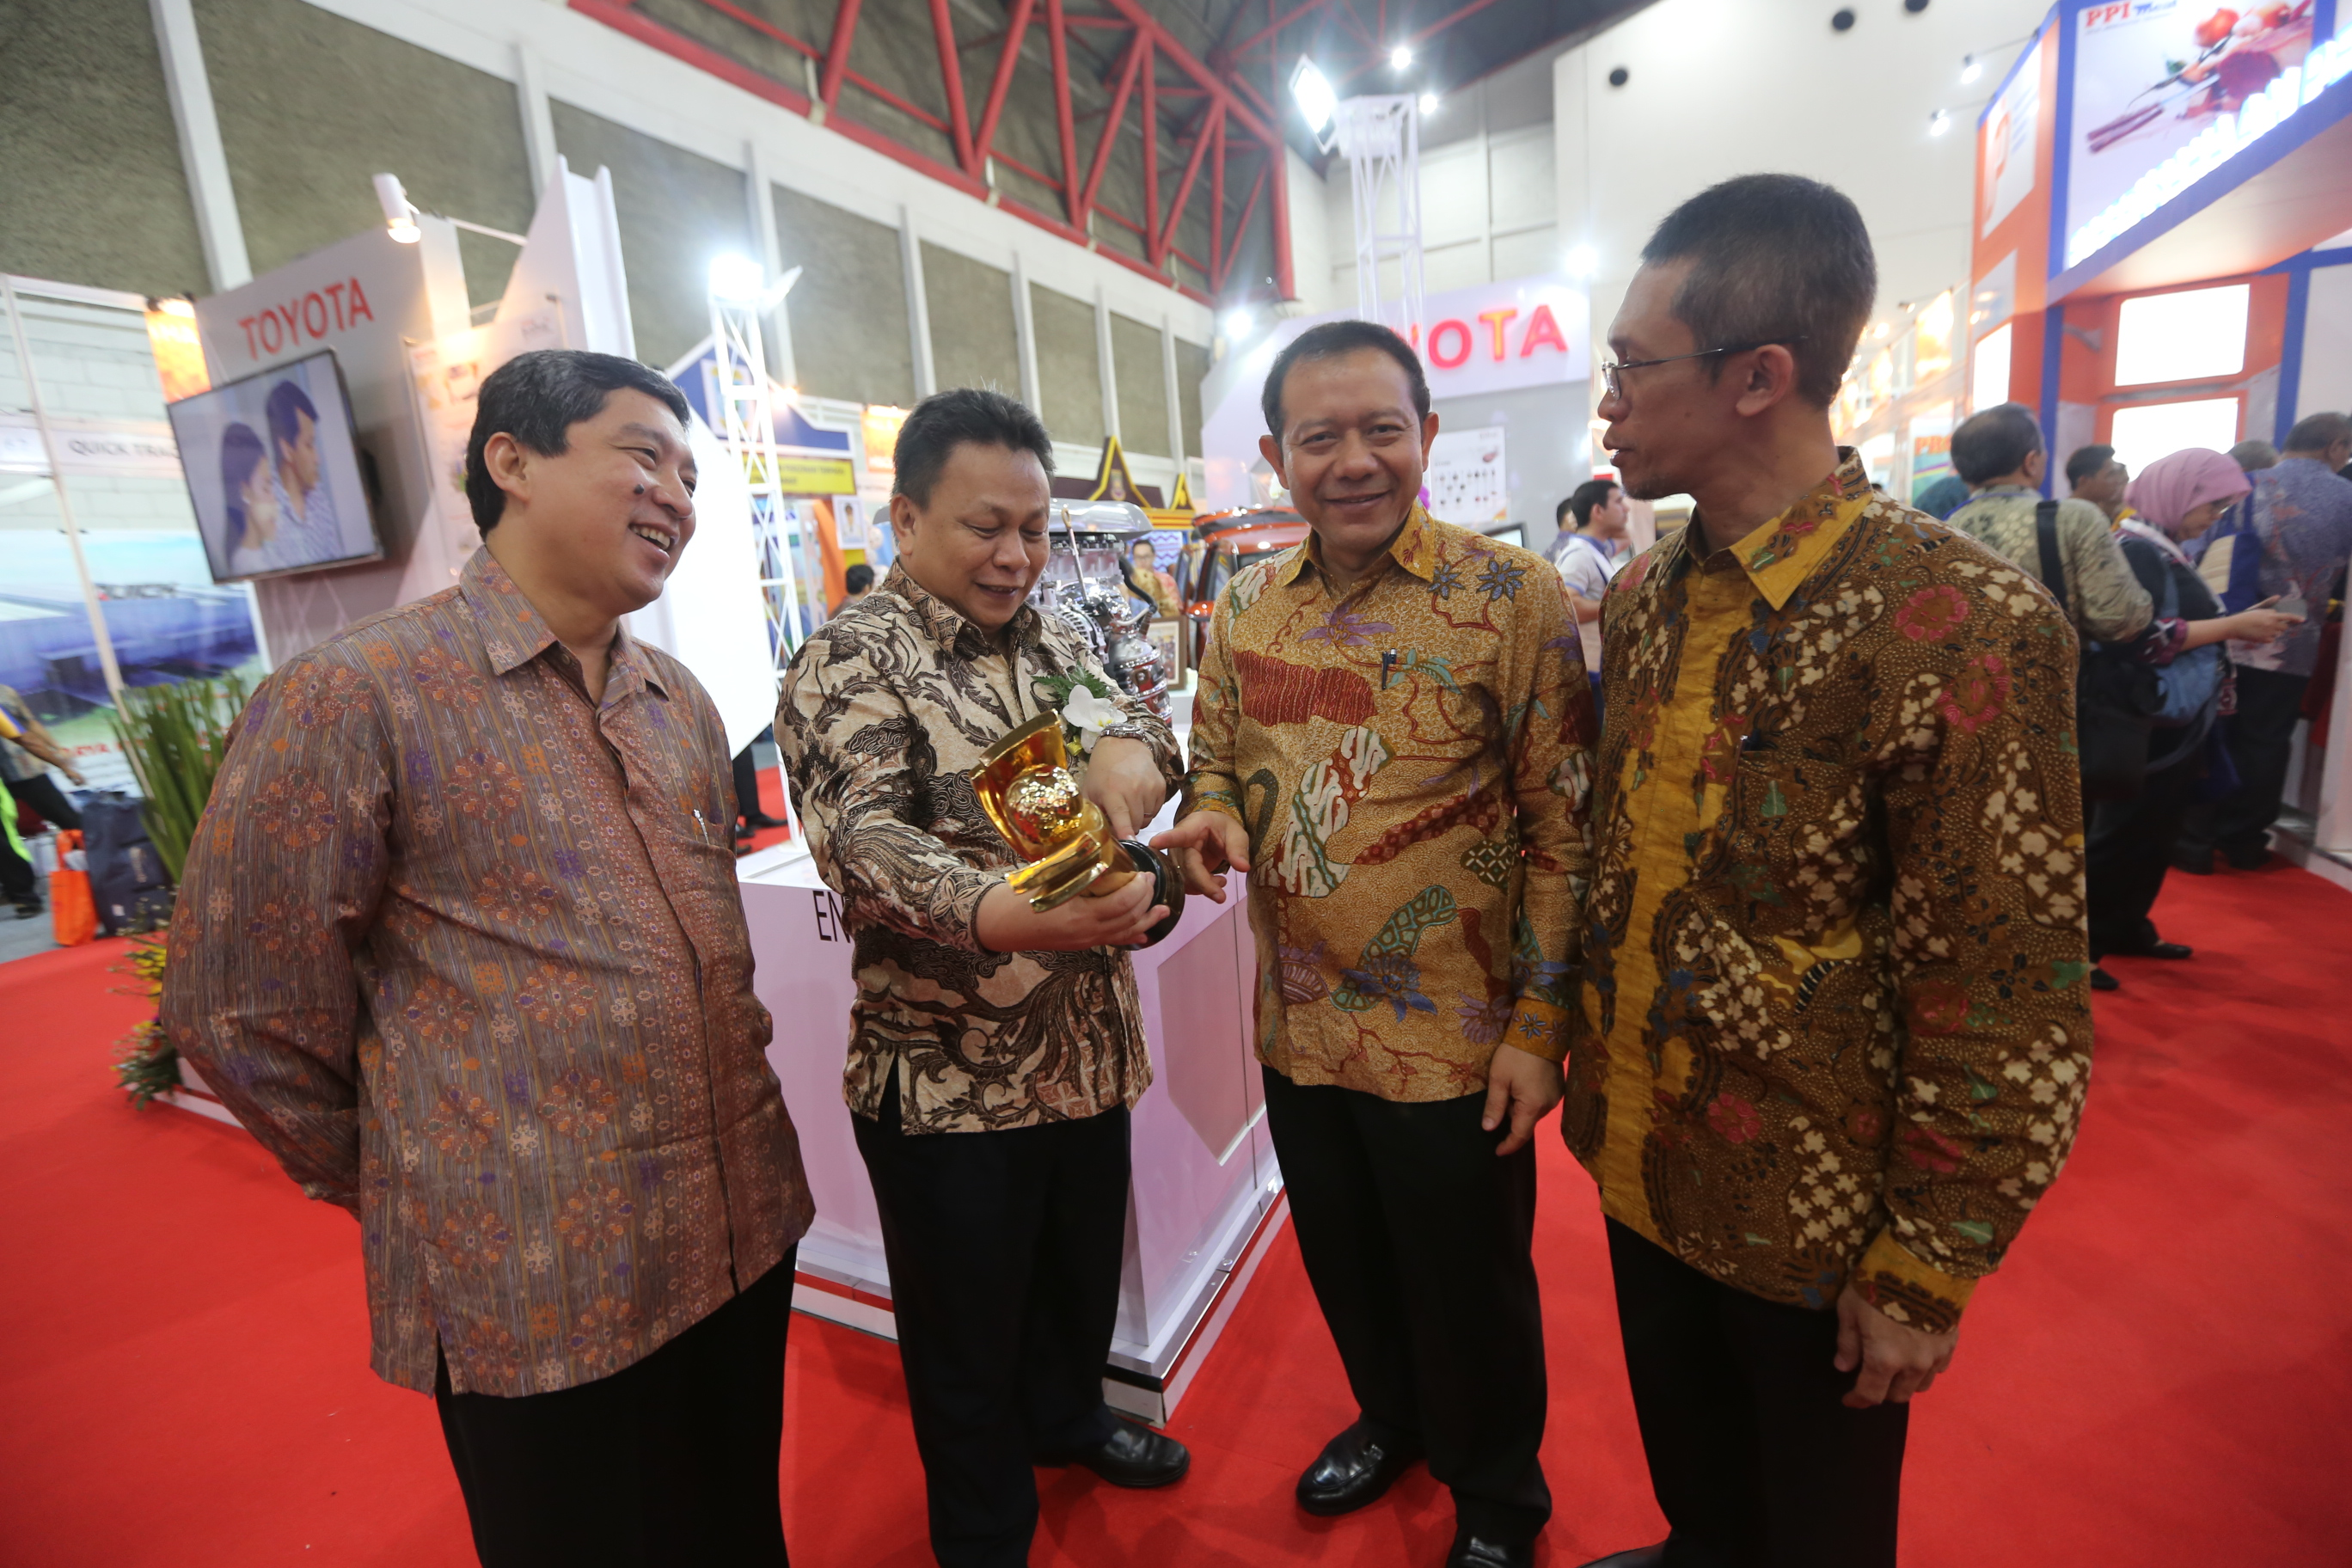 Toyota Indonesia once again winning the primaniyarta award